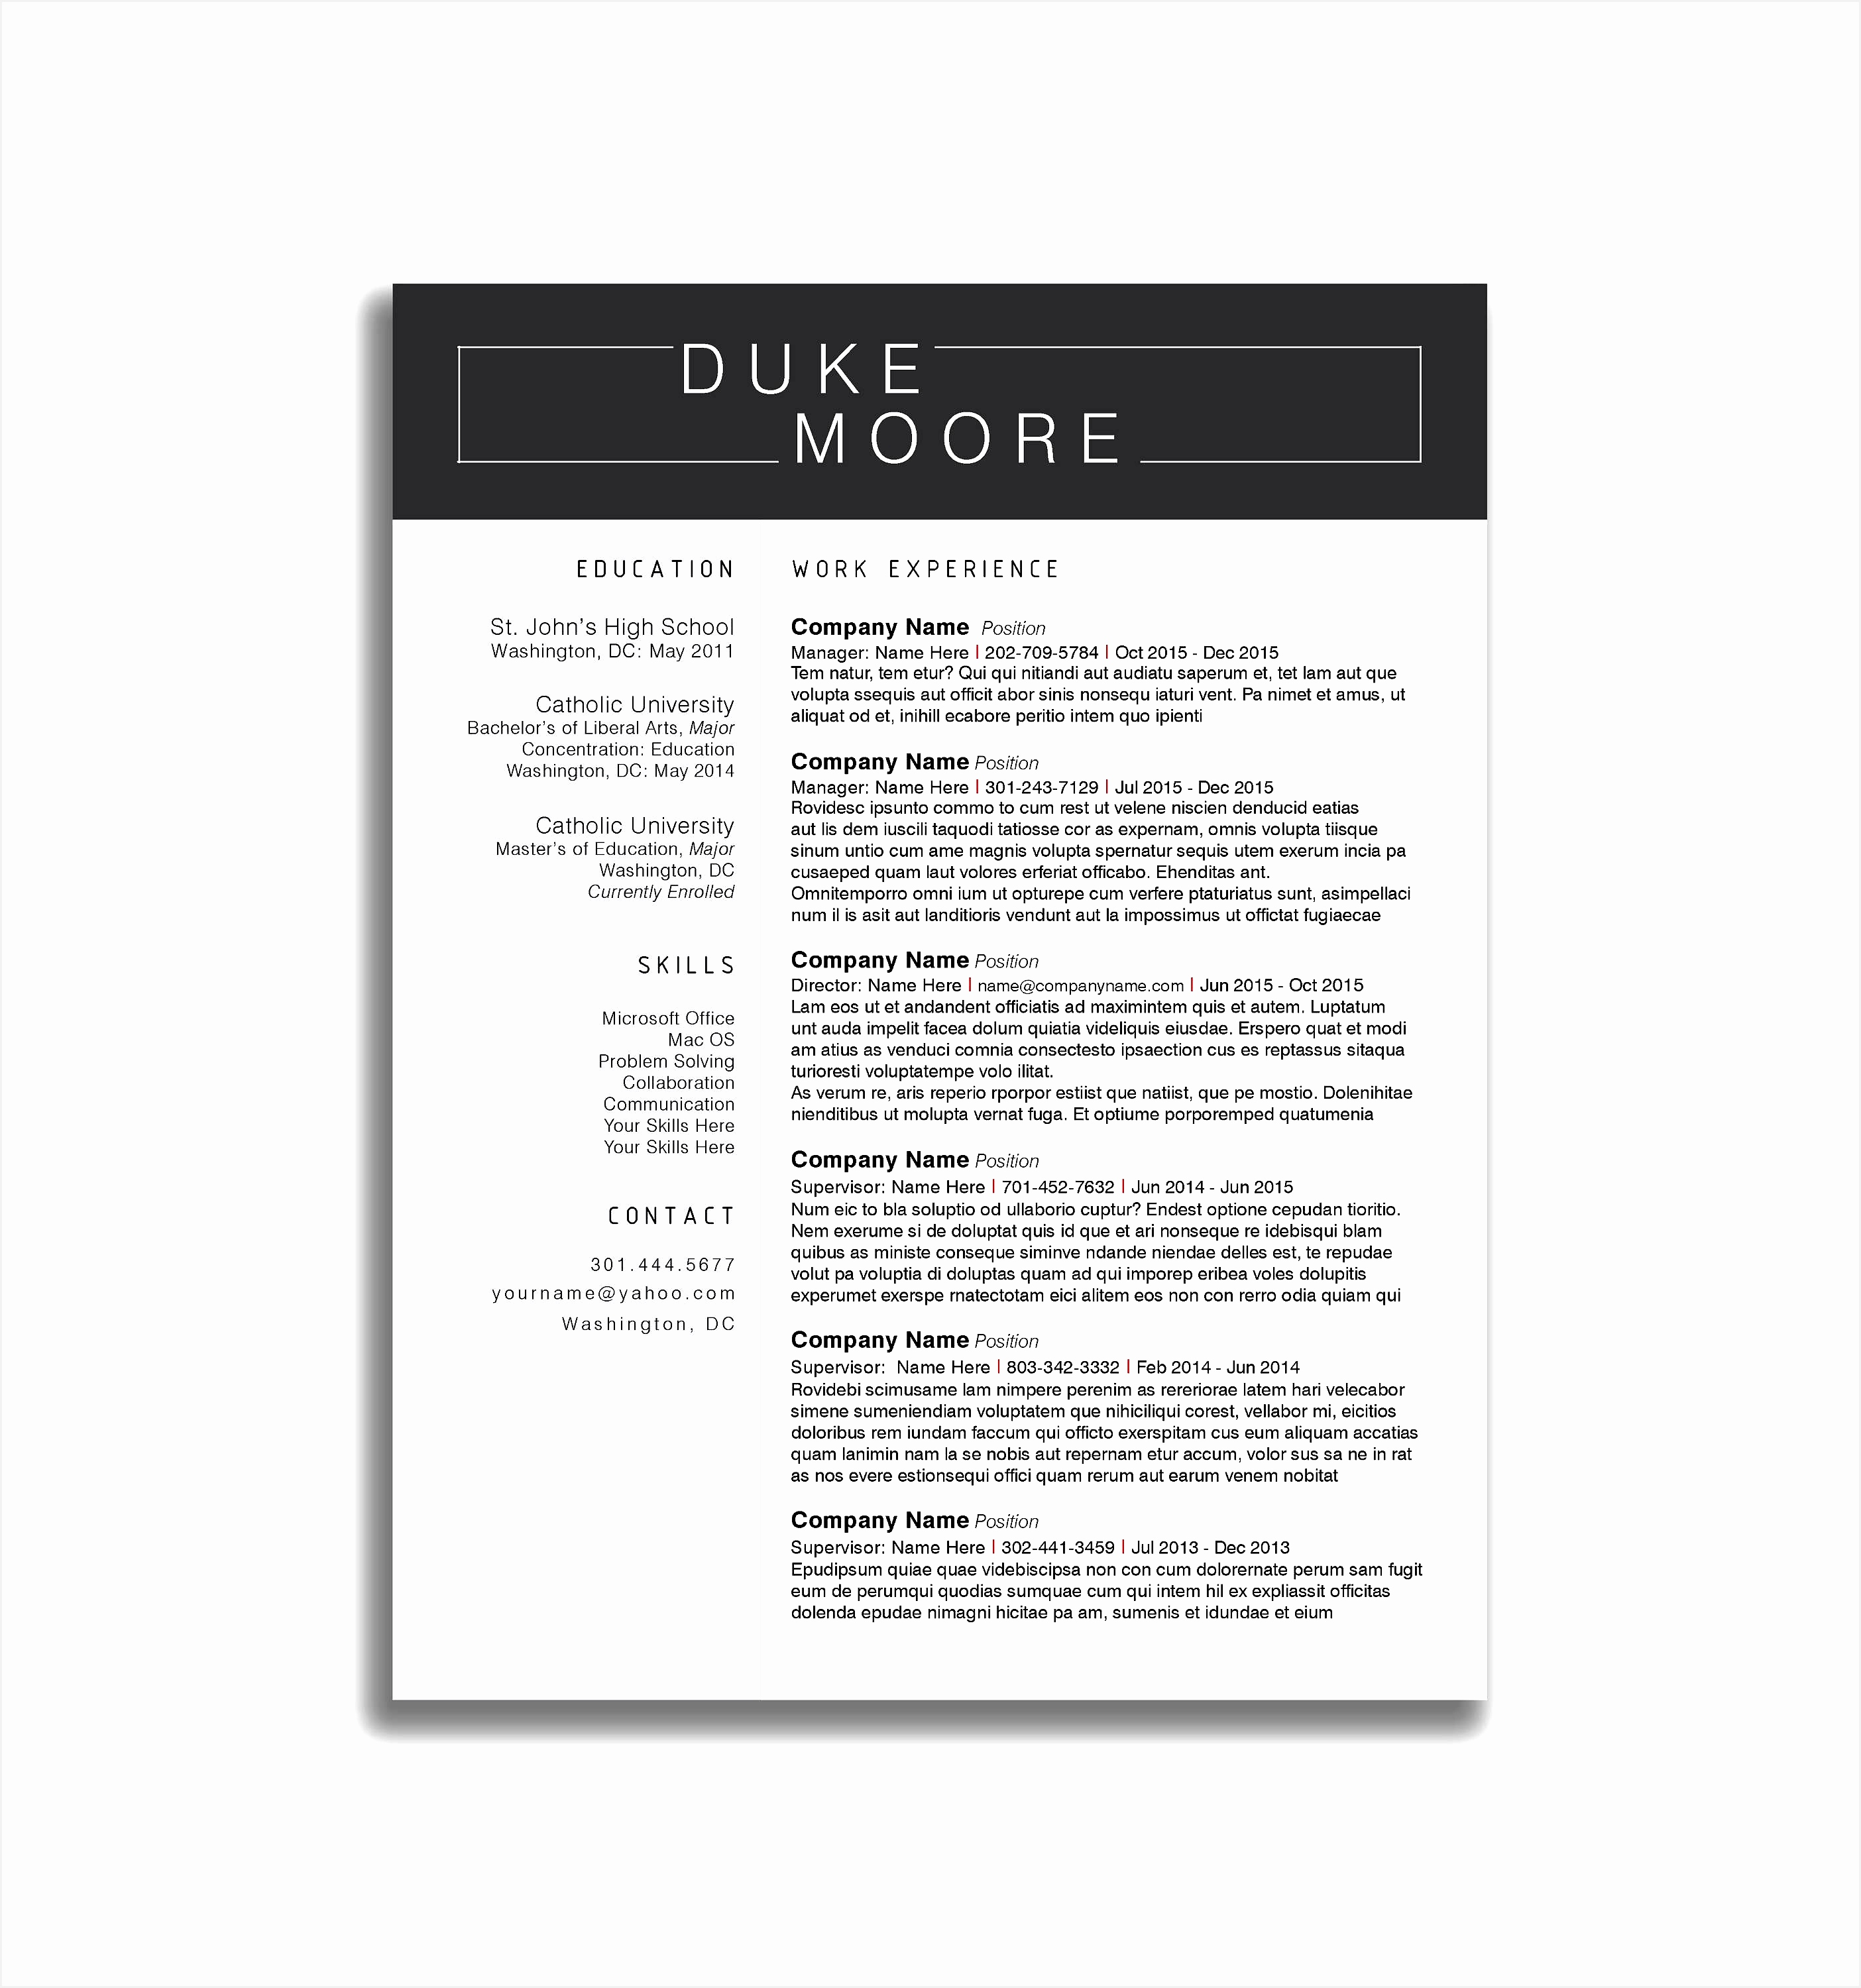 Ministry Resume Templates Best Resume Writing Examples Beautiful Resume Cover Letter Template Docx30002808